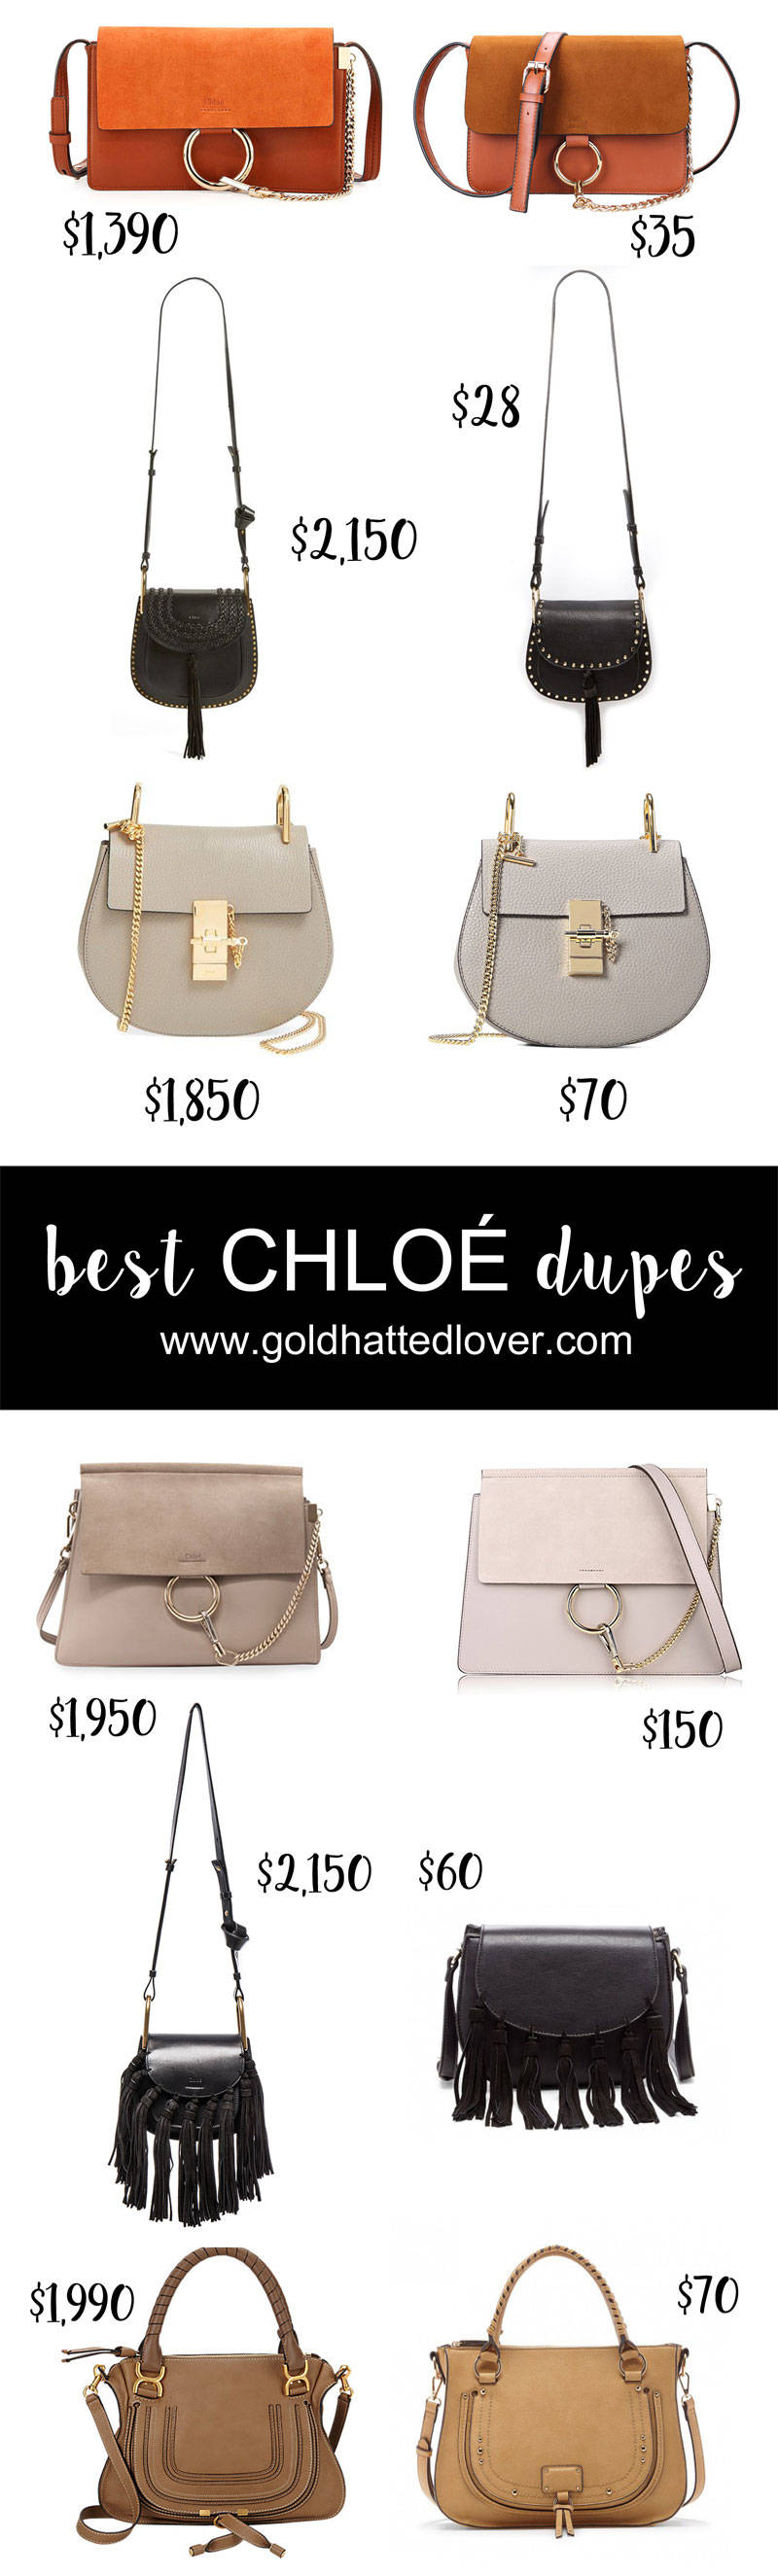 SPLURGE V. SAVE: BEST CHLOÉ HANDBAG DUPES.